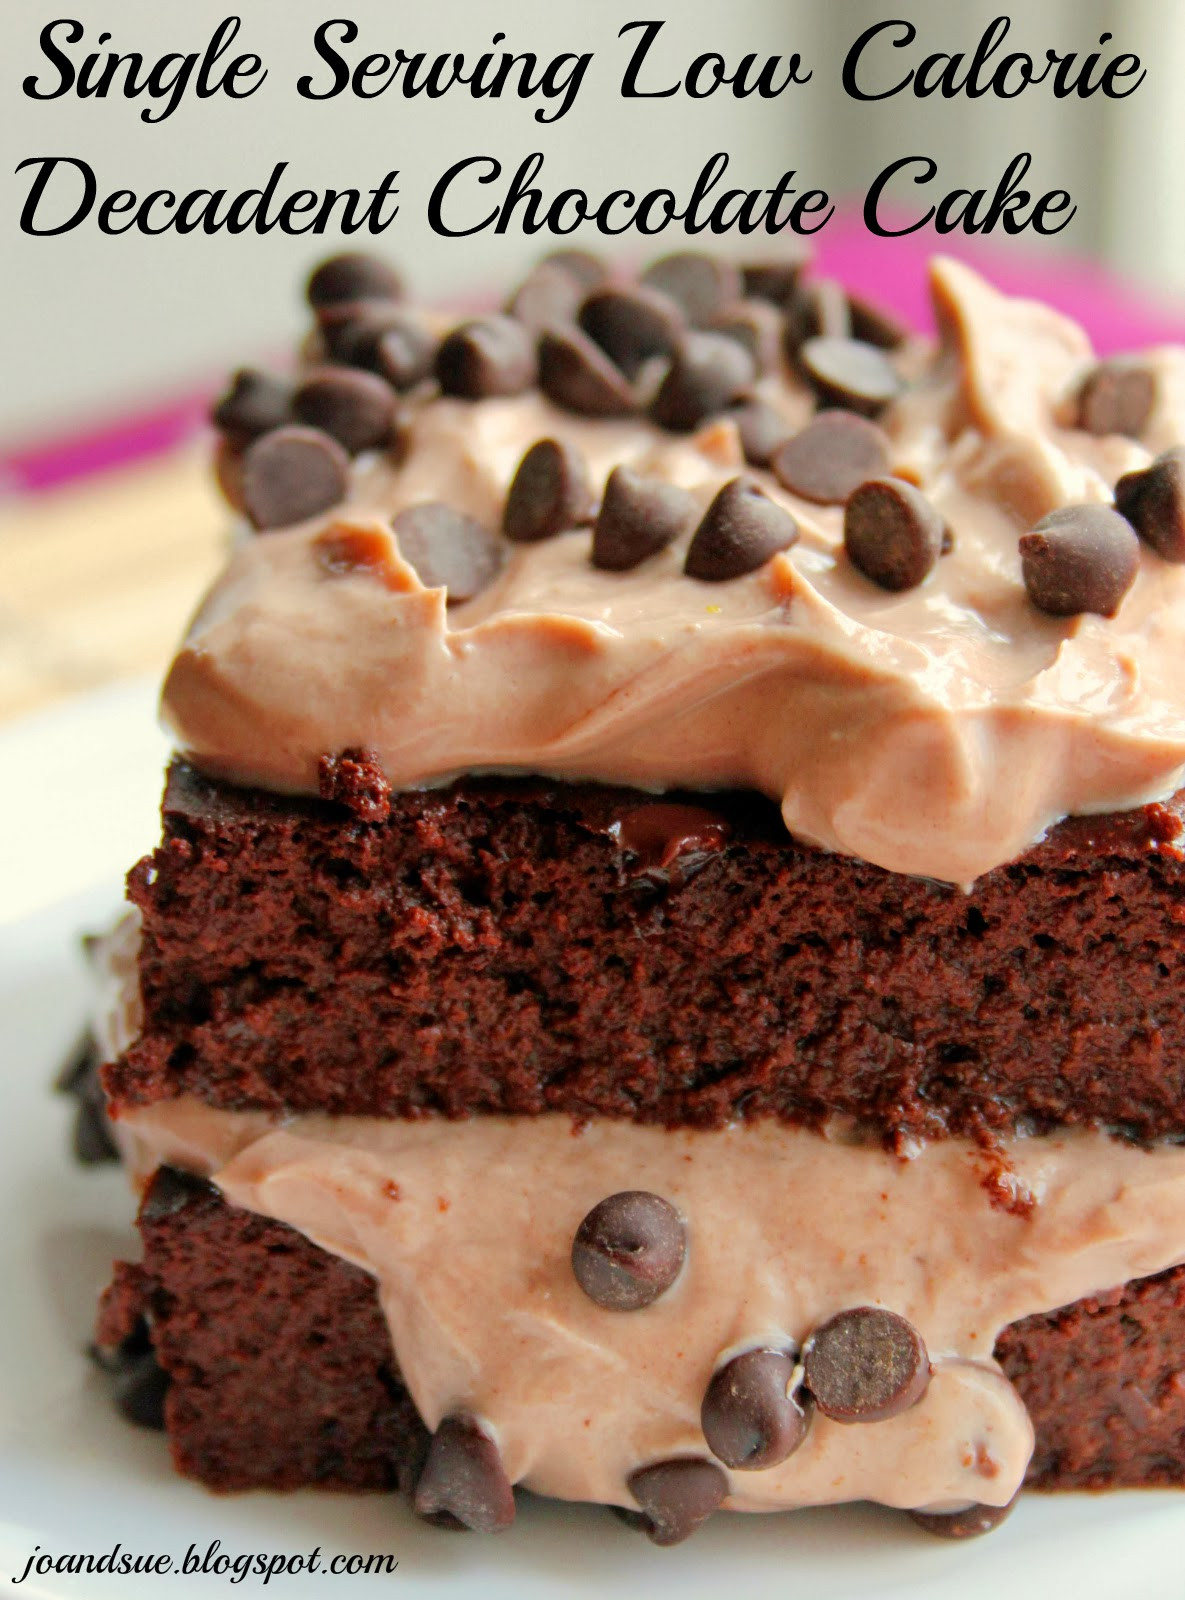 Low Calorie Chocolate Cake  Jo and Sue Single Serving Low Calorie Decadent Chocolate